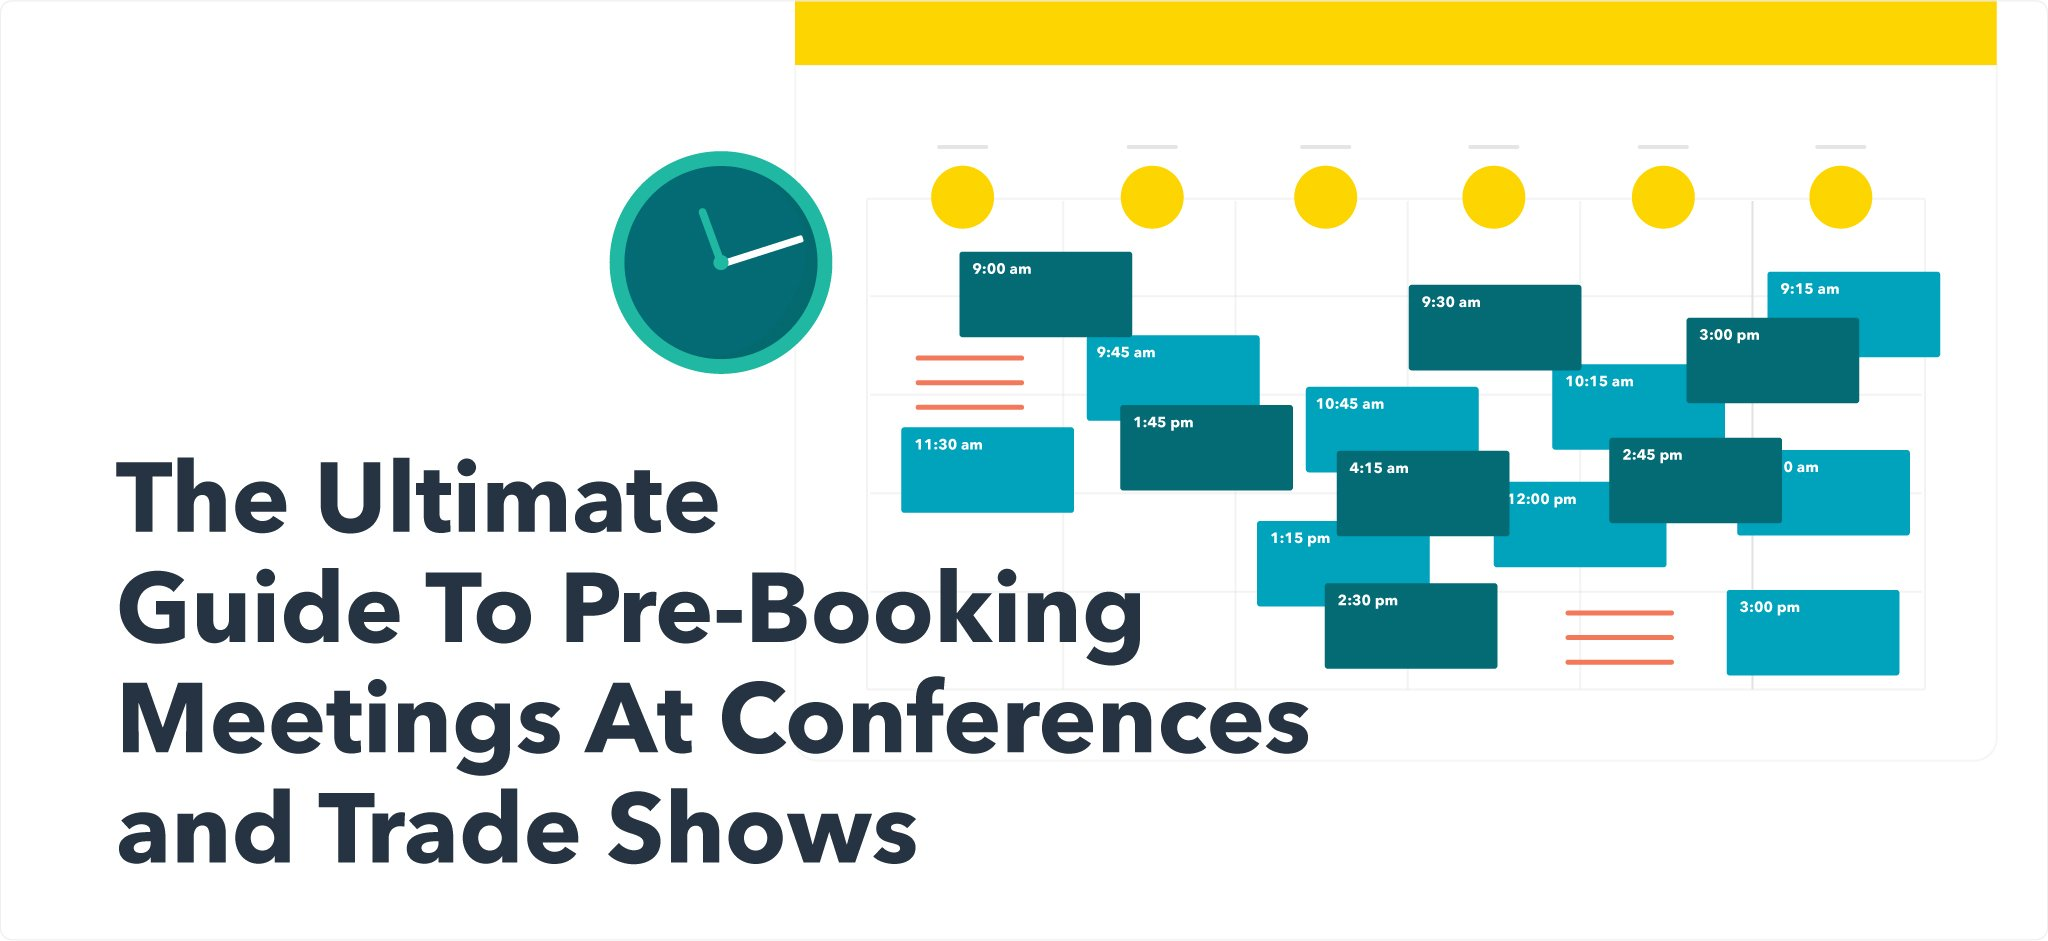 Ultimate Guide to Pre-Booking Meetings at Conferences